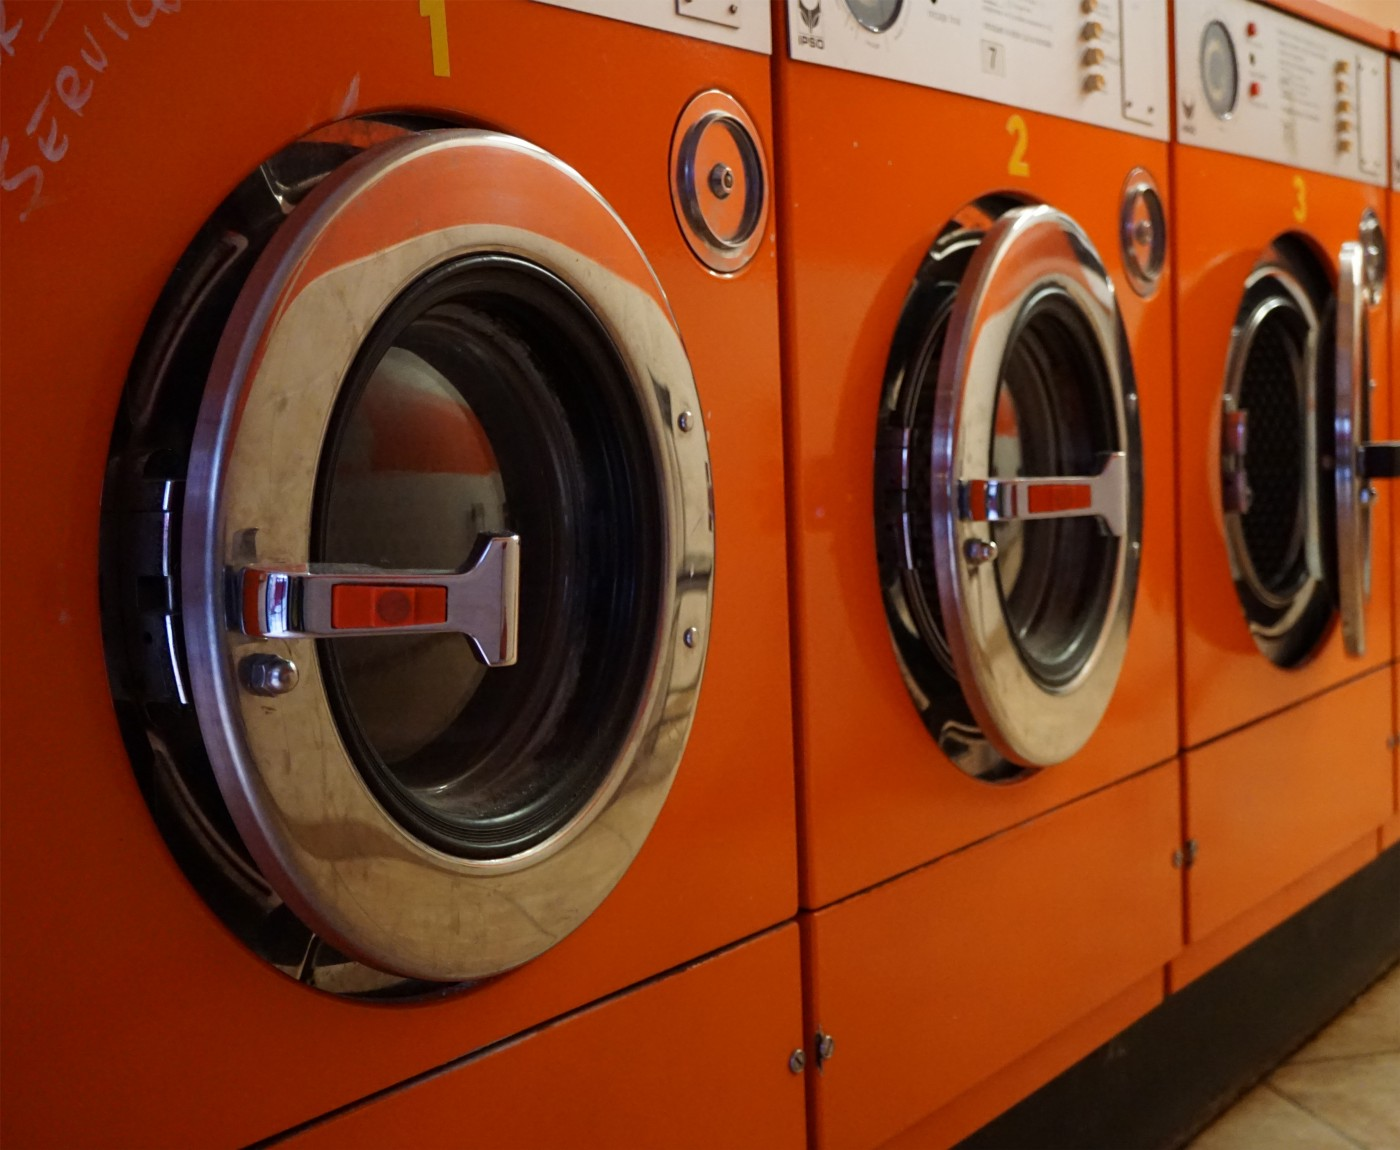 Three washing machines in a laundry